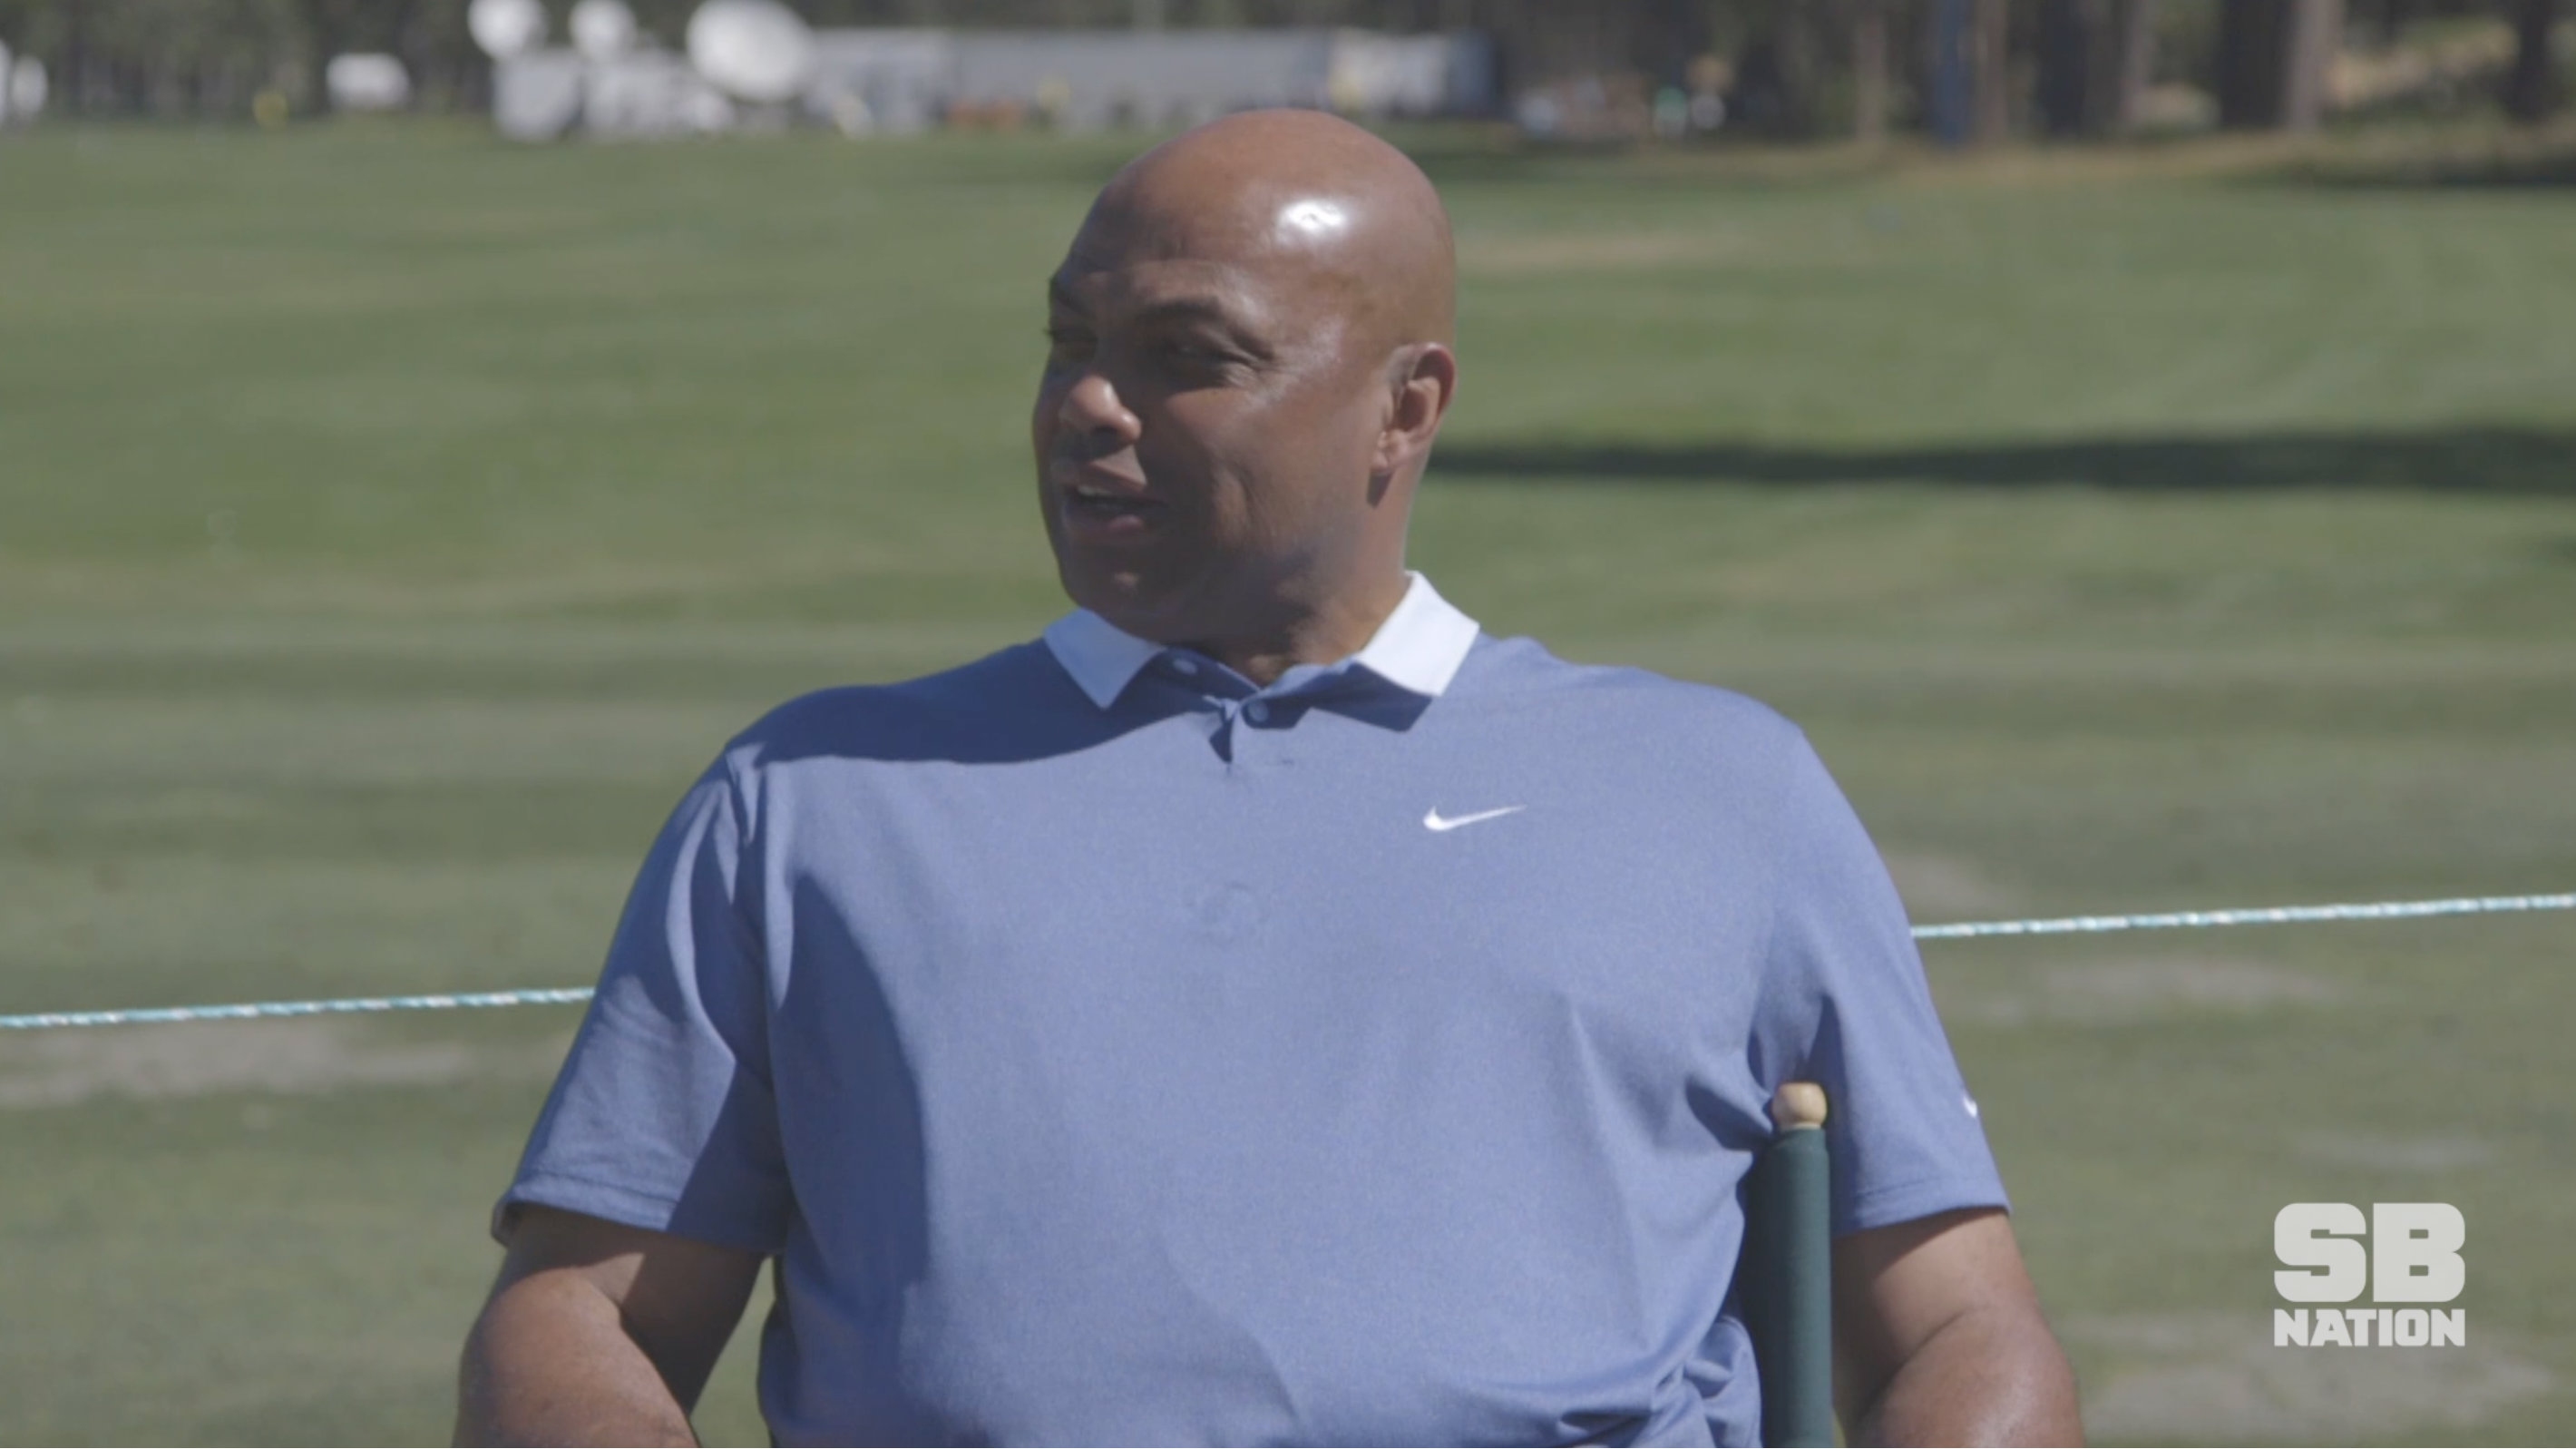 http://golfchannel.akamaized.net/ramp/991/551/charles-barkley-interview.jpg